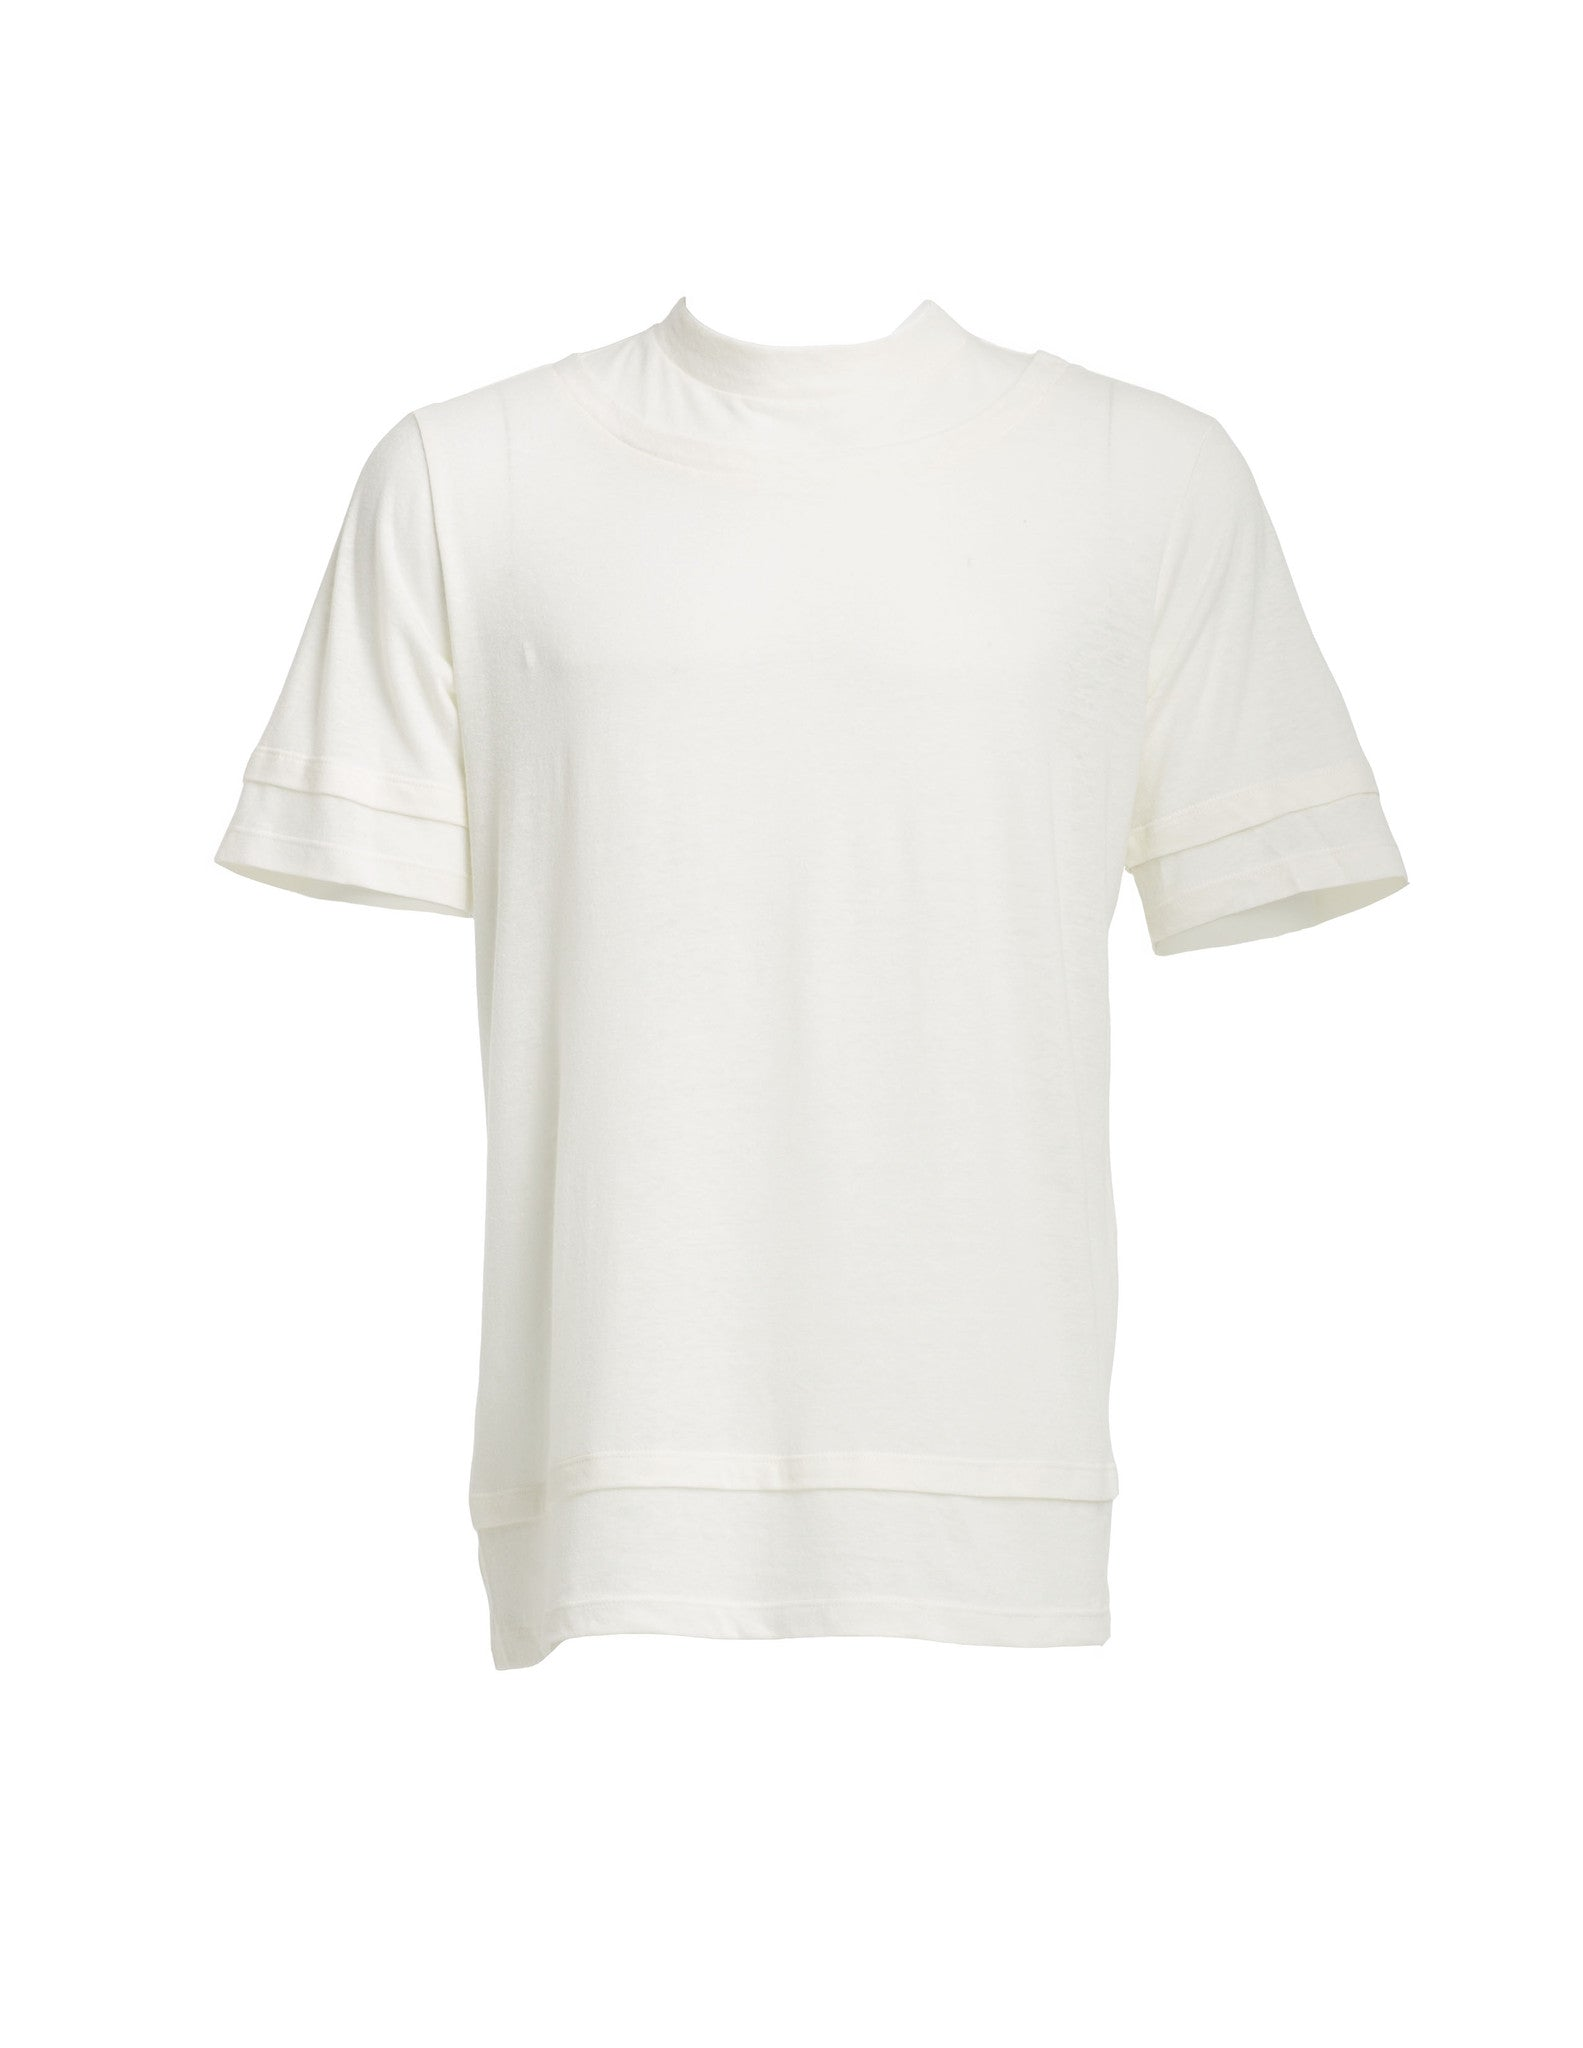 Segment T-Shirt in Off White